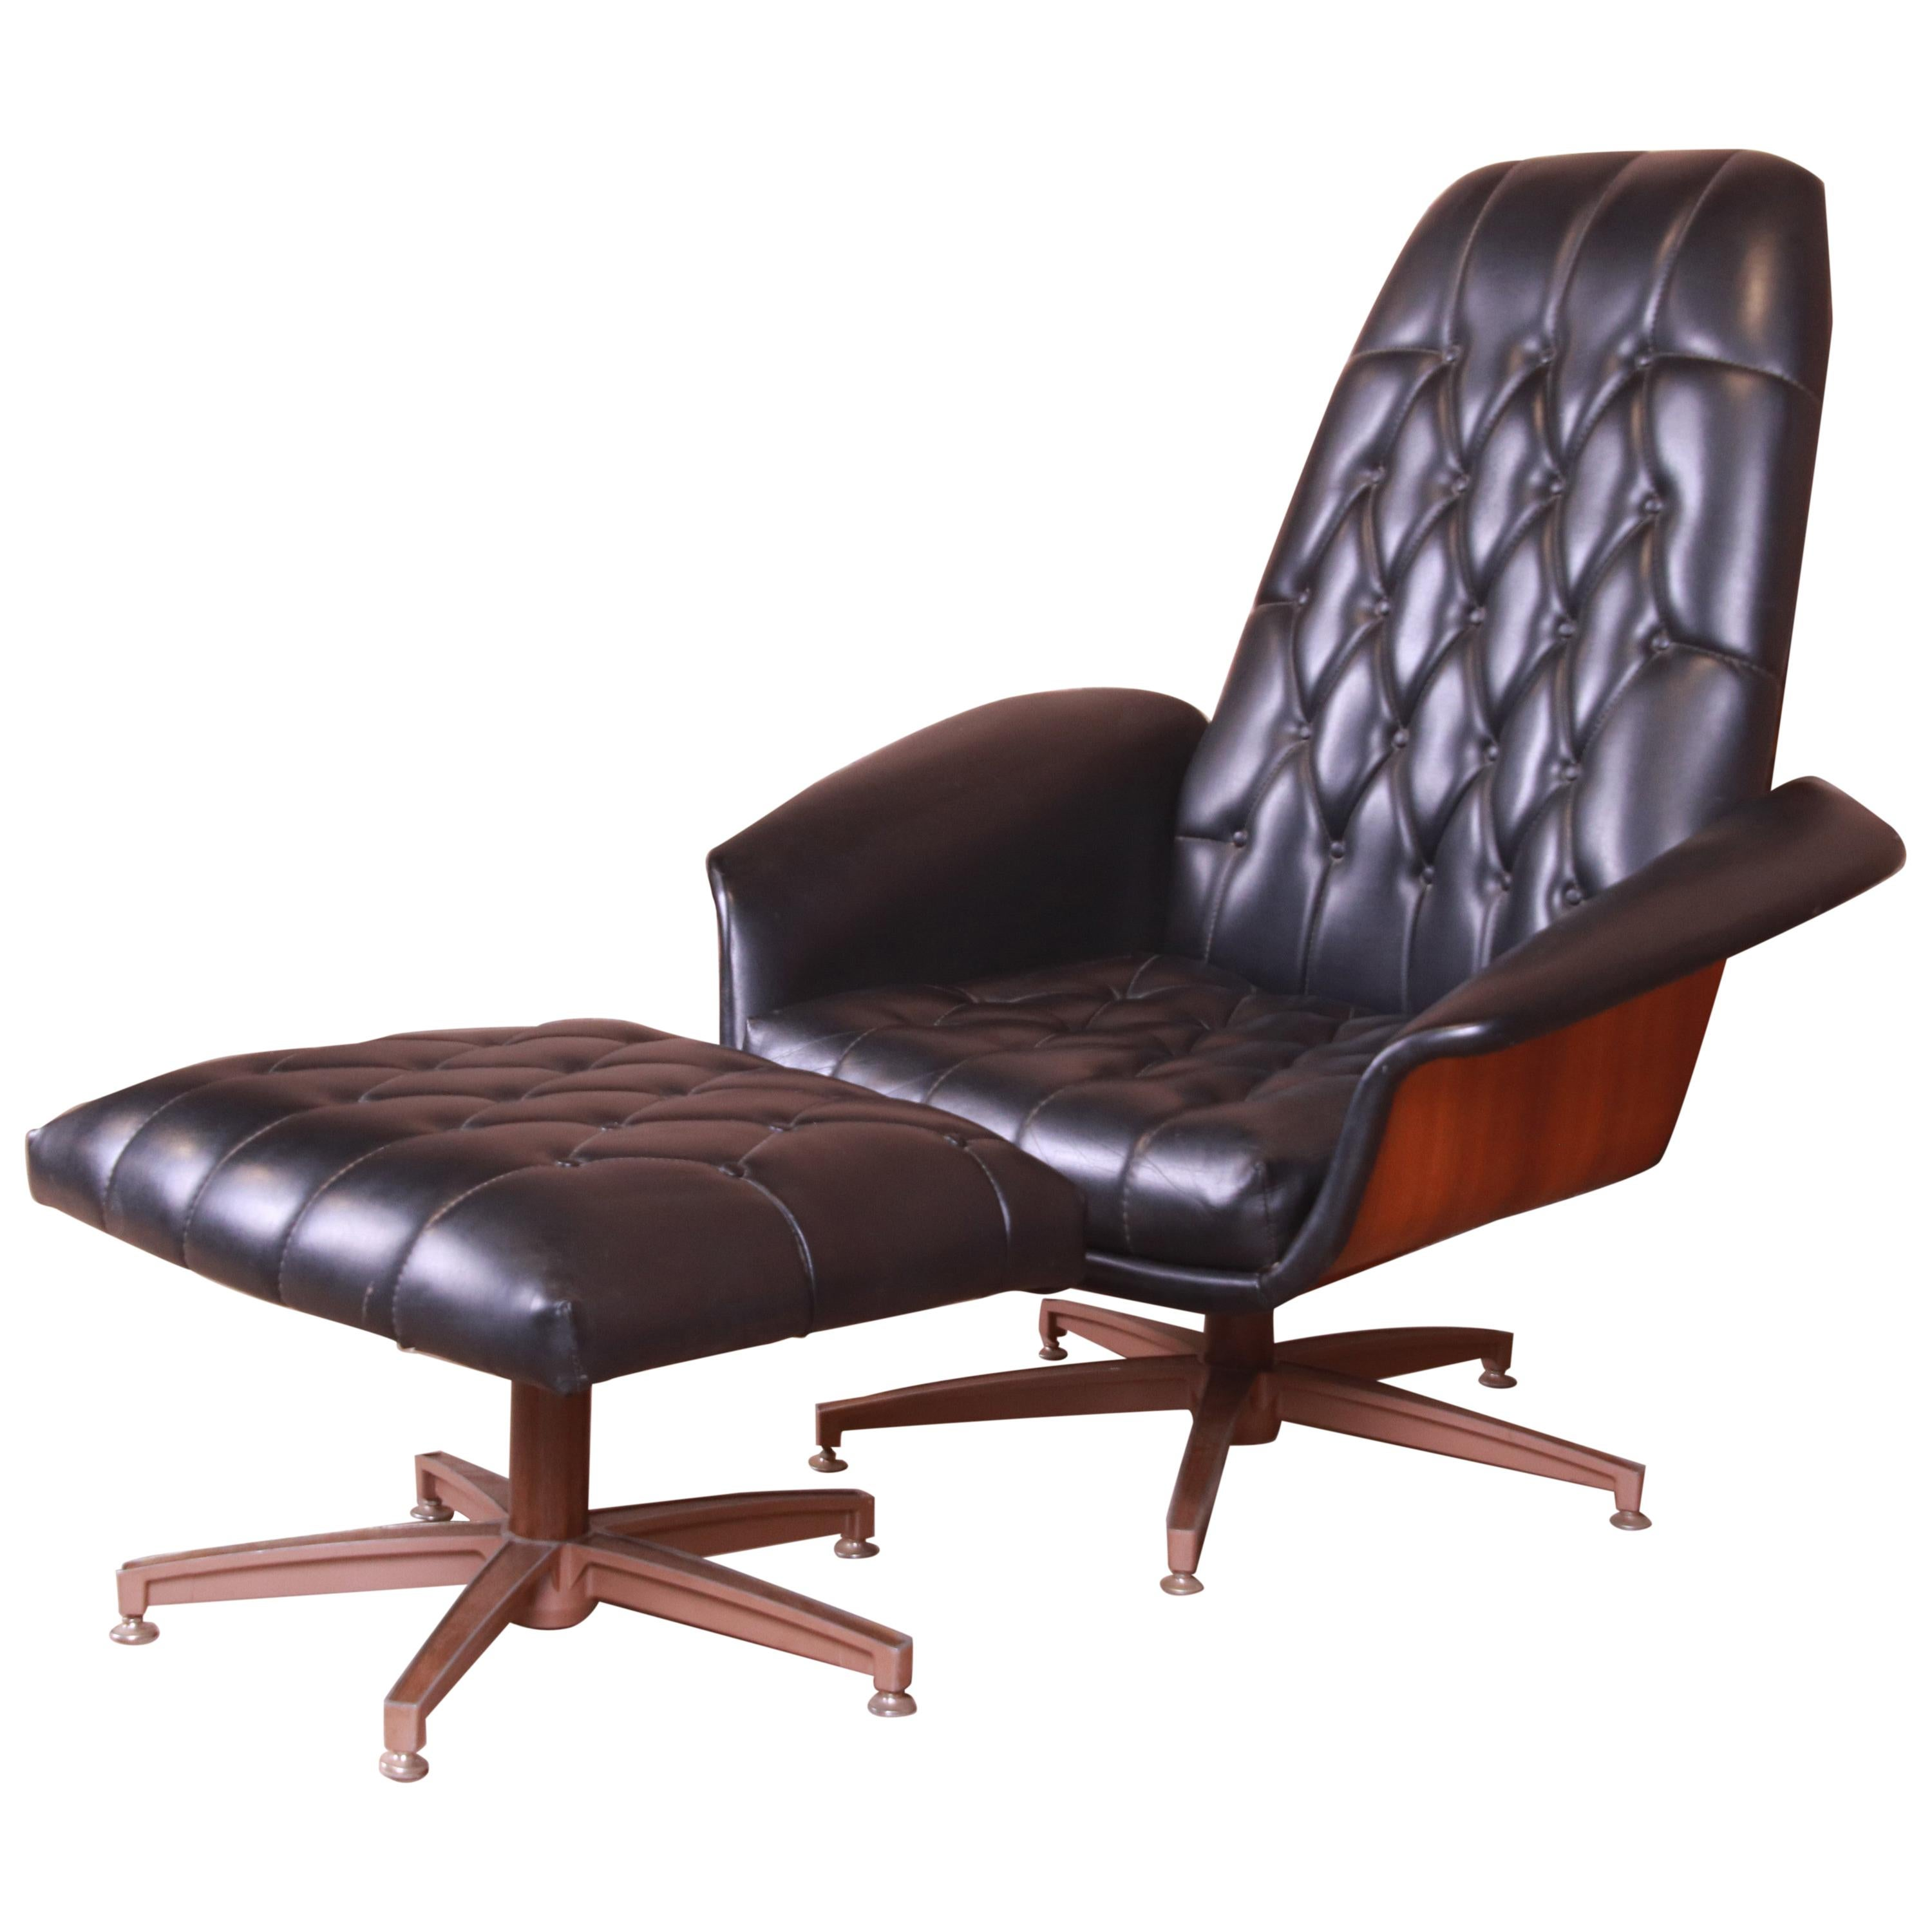 """George Mulhauser for Plycraft """"Mister"""" Lounge Chair with Ottoman, 1960s"""